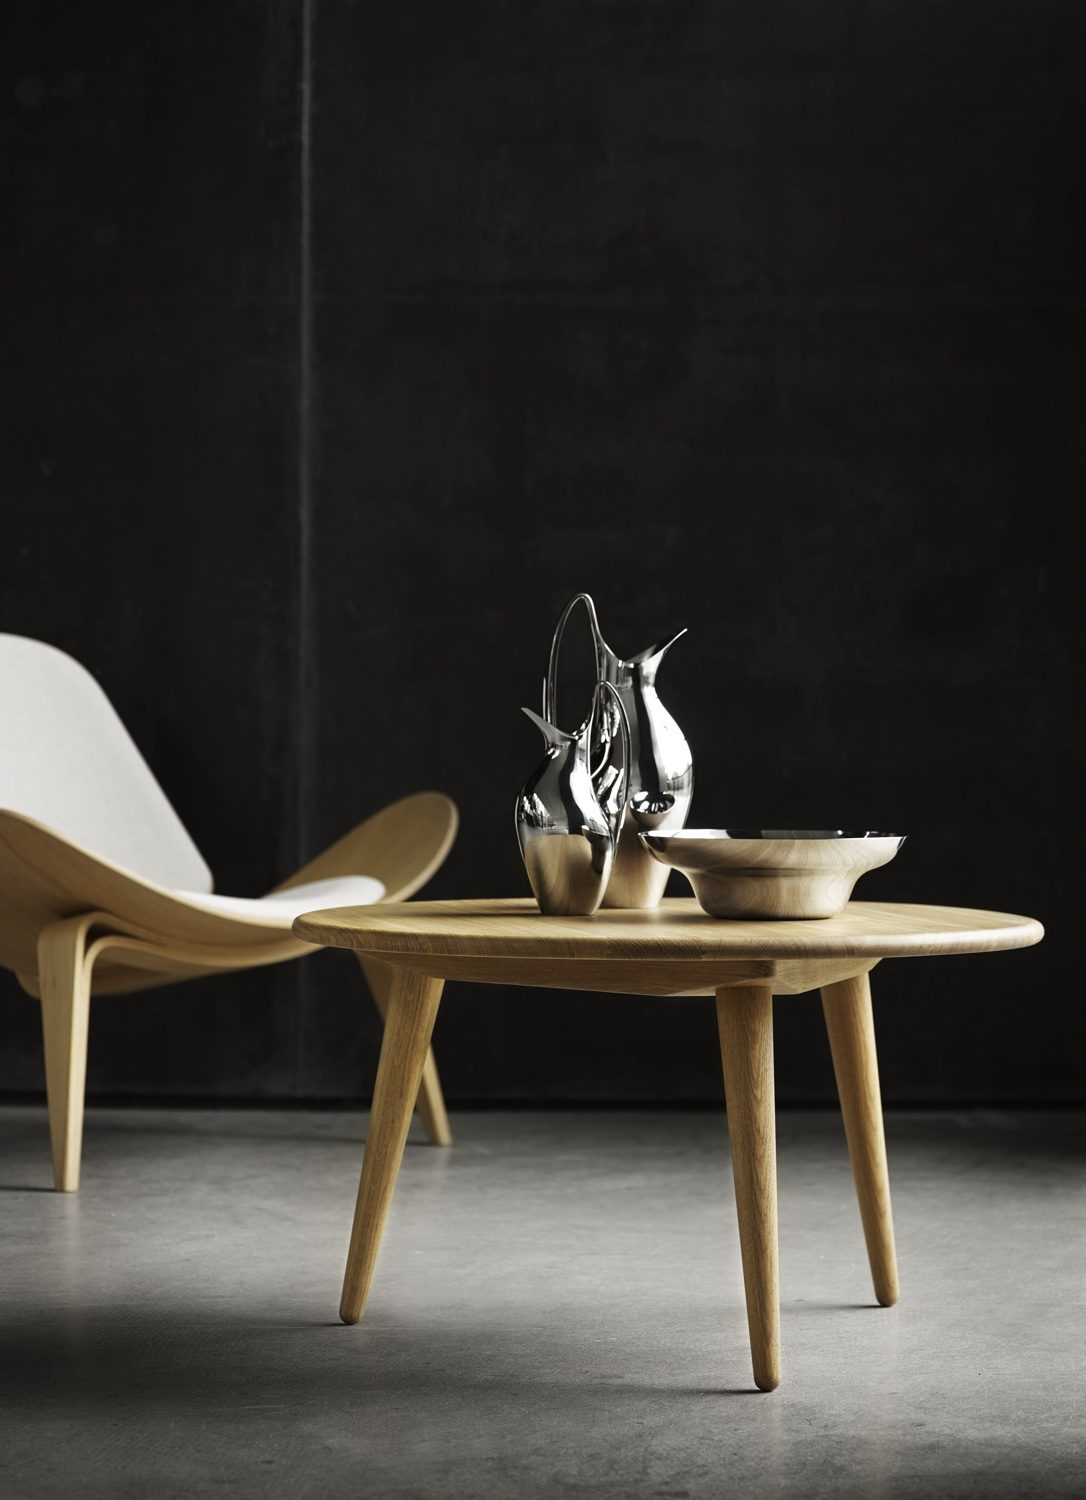 Find a superlative level ofhygge in Hans J. Wegner's CH07 Shell Chair and CH008 coffee table. Image courtesy of Carl Hansen & Søn.